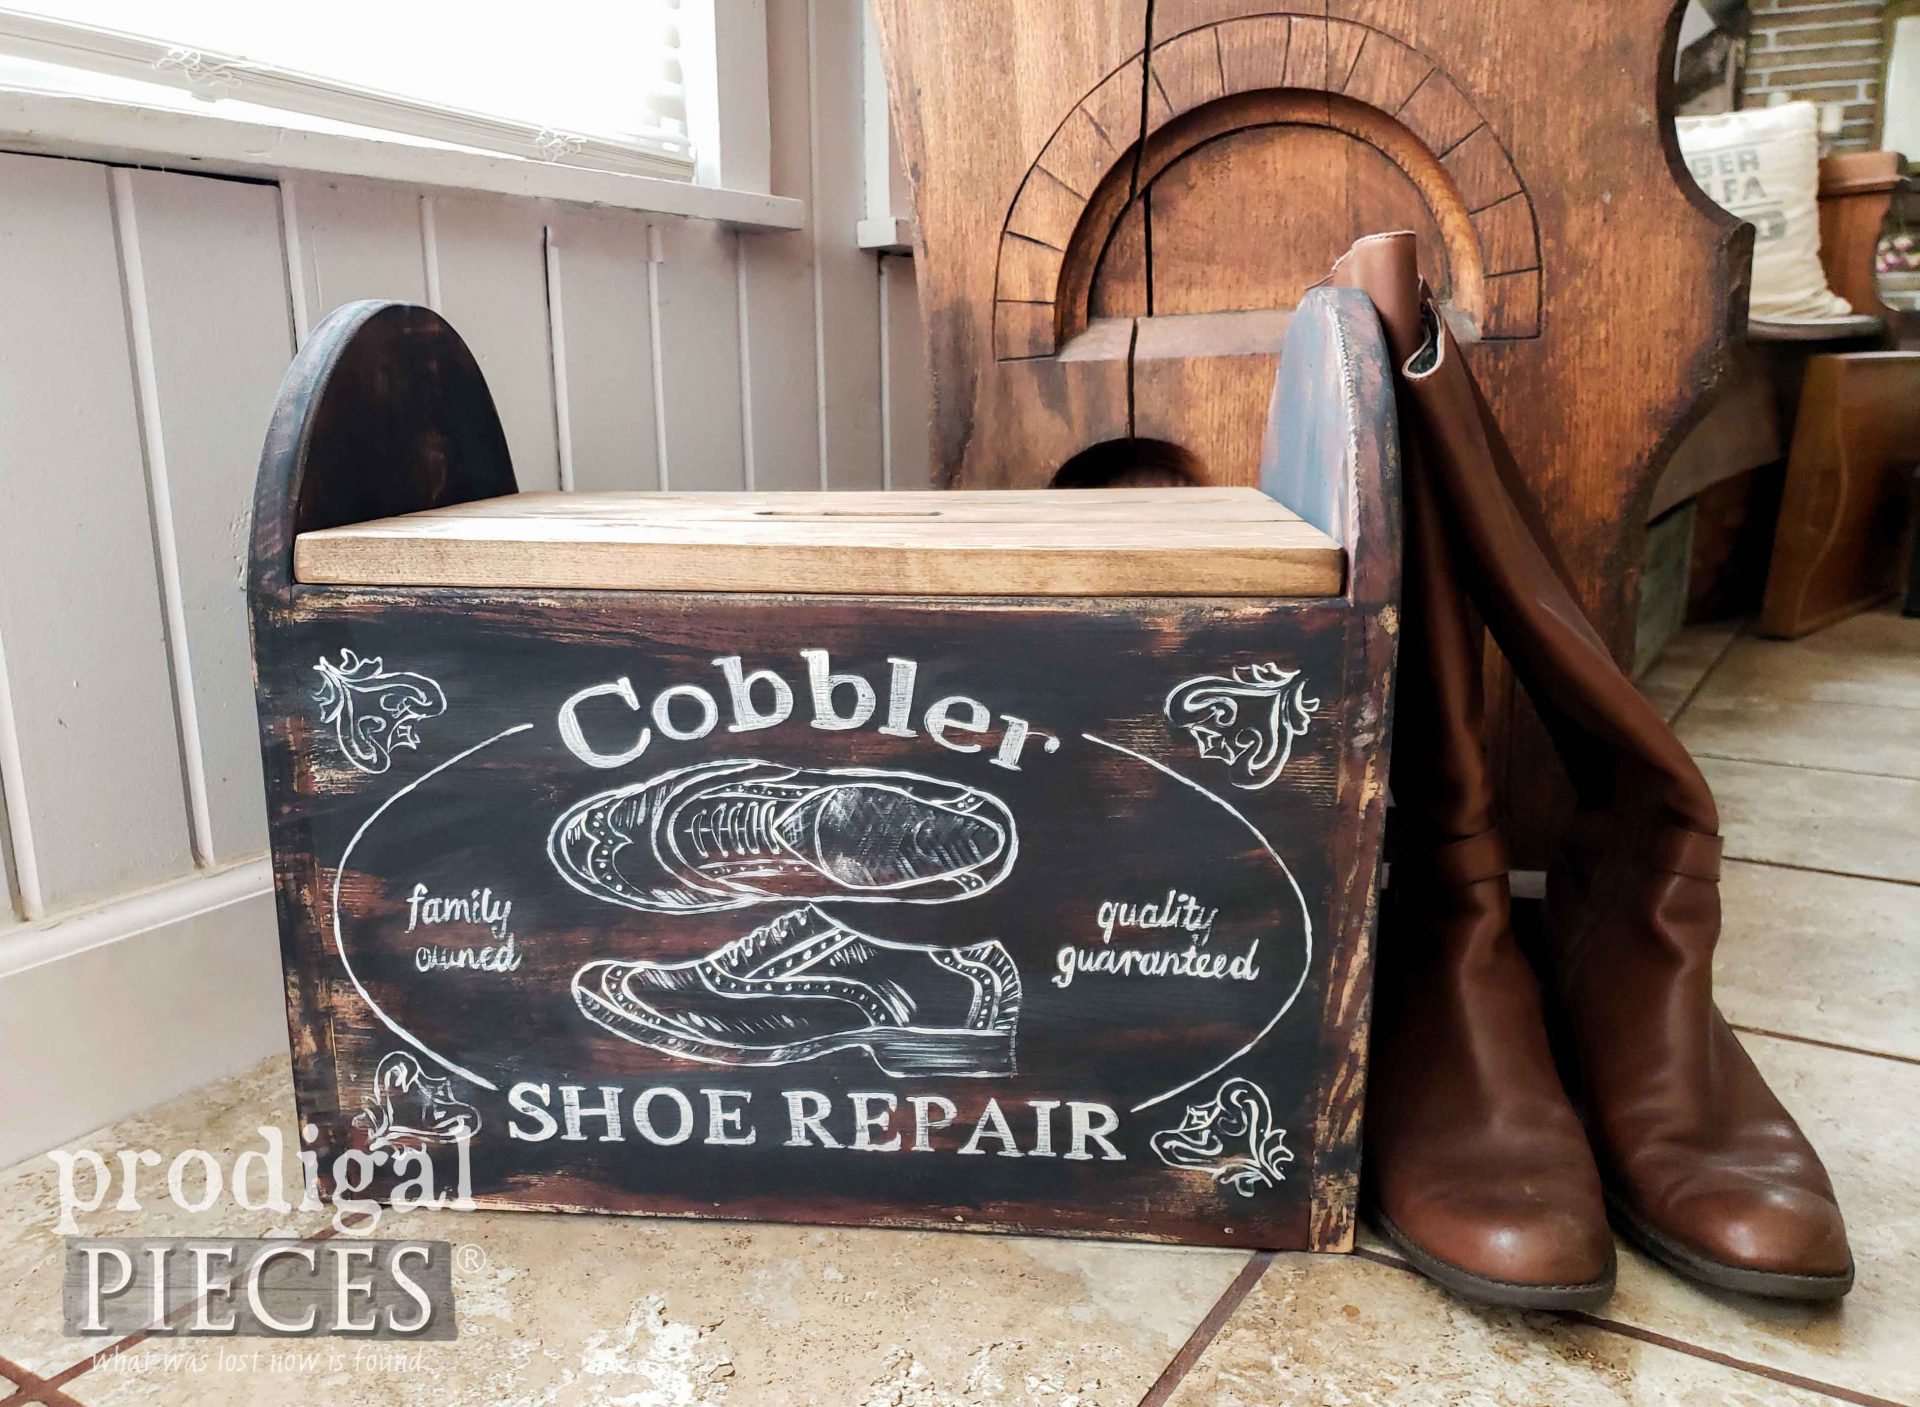 Farmhouse Style DIY Decor with Handmade Cobbler Bin by Larissa of Prodigal Pieces | prodigalpieces.com #prodigalpieces #farmhouse #rustic #handmade #home #homedecor